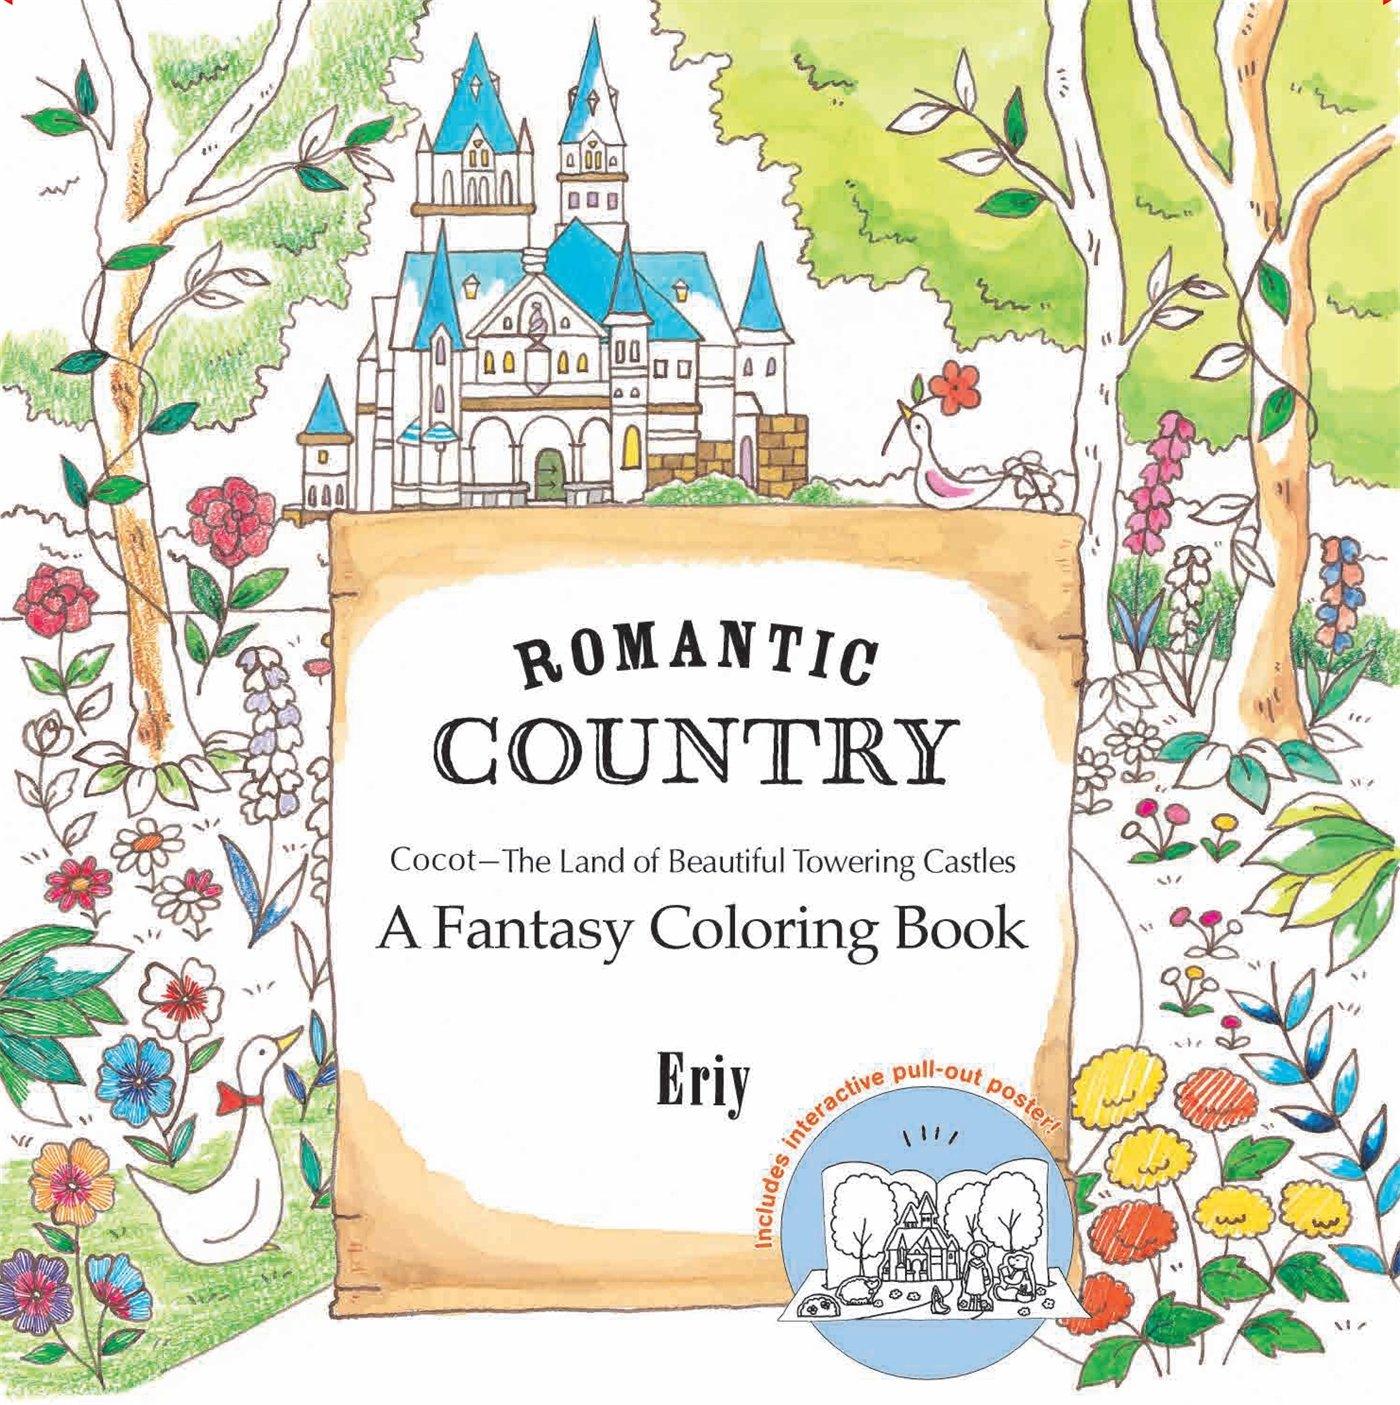 How To Say Colouring Book In Japanese - Amazon com romantic country a fantasy coloring book 9781250094469 eriy books